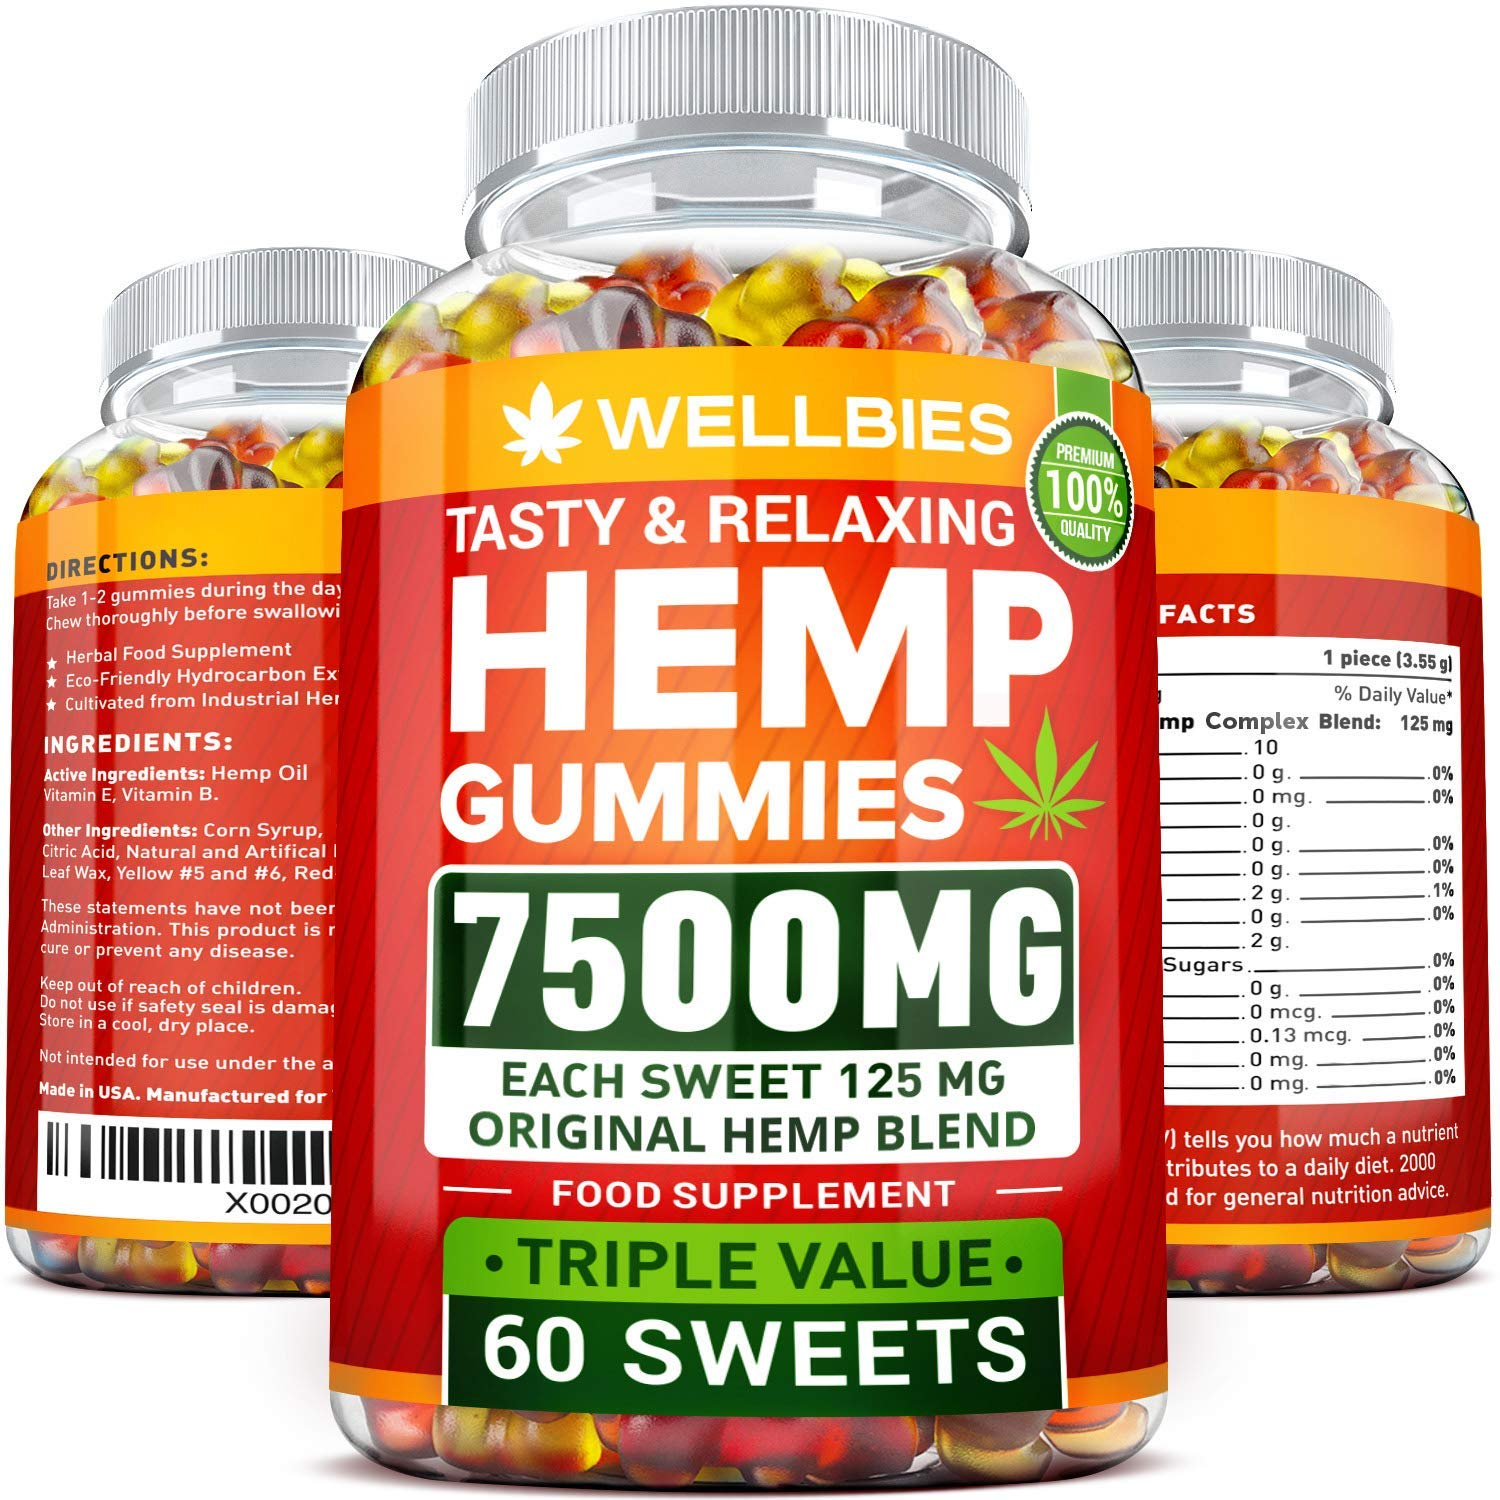 Premium Hemp Gummies - Natural Hemp - Made in USA - King Size 7500MG - Boost Memory Function, Improved Sleep, Support Good Mood - Fast Results - Rich in Vitamins B, E, Omega 3, 6, 9